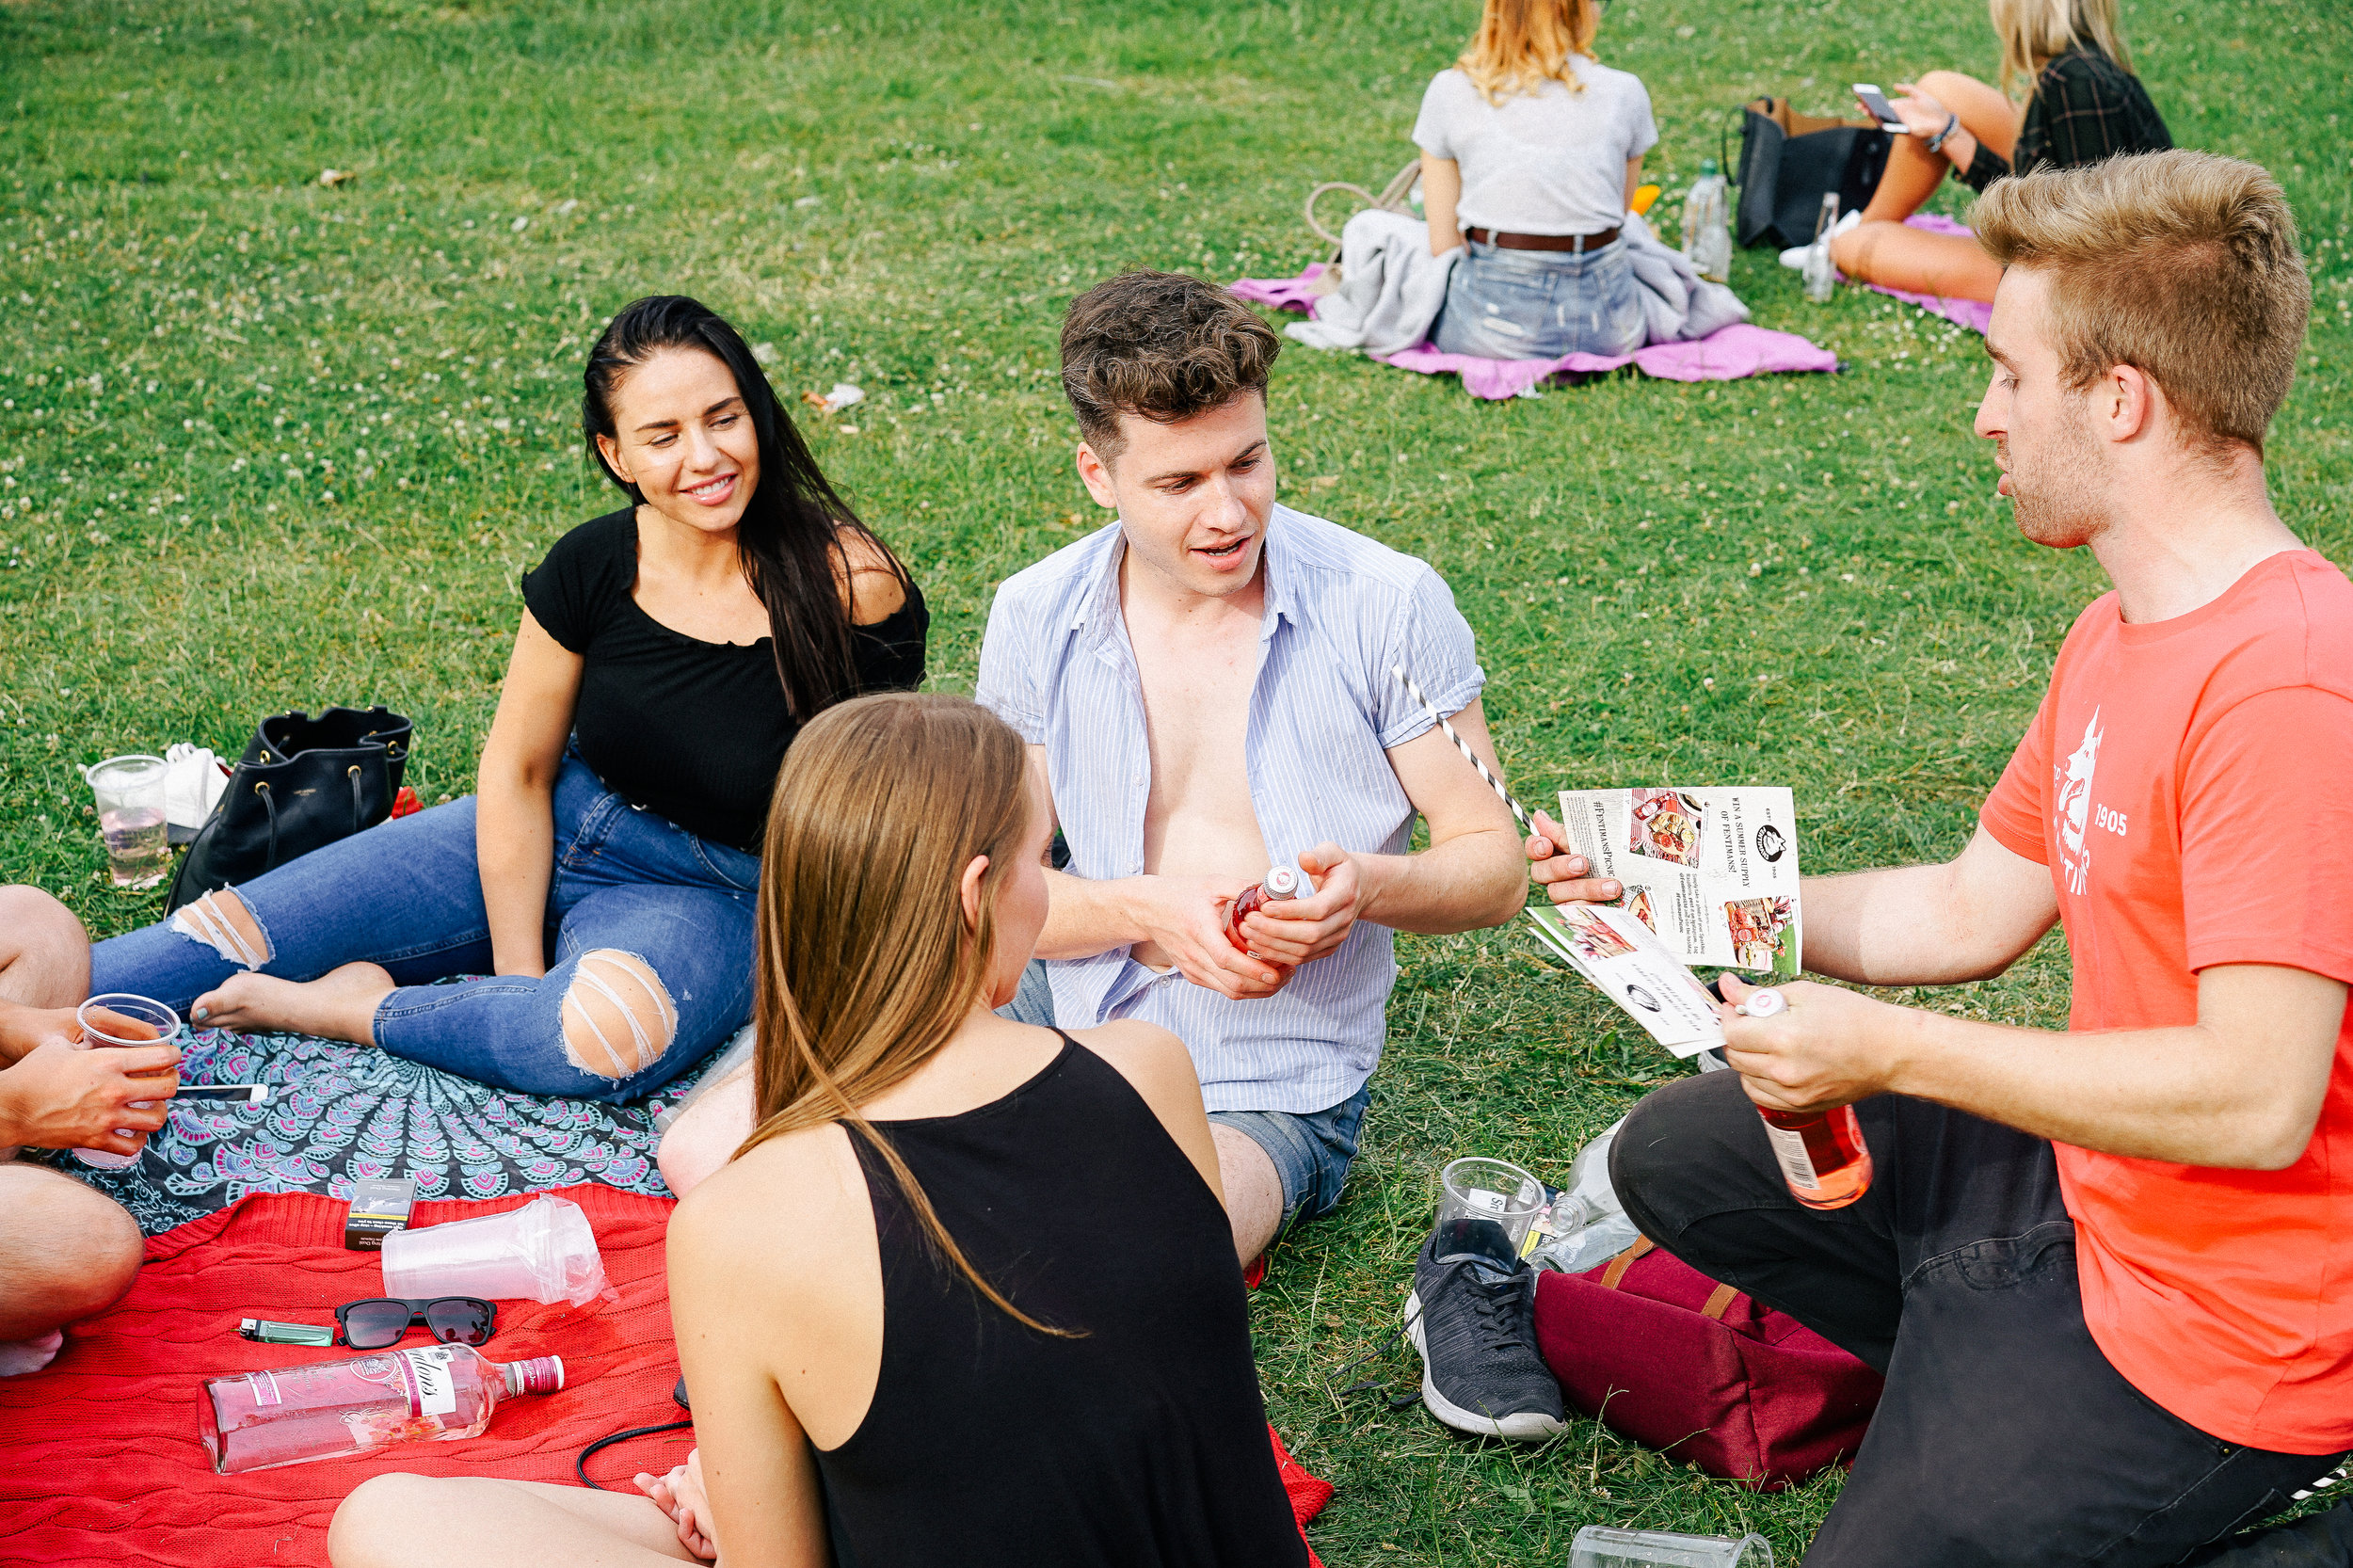 Quirky Group Brand Ambassadors Launch Fentimans Sparkling Raspberry - People Picnic